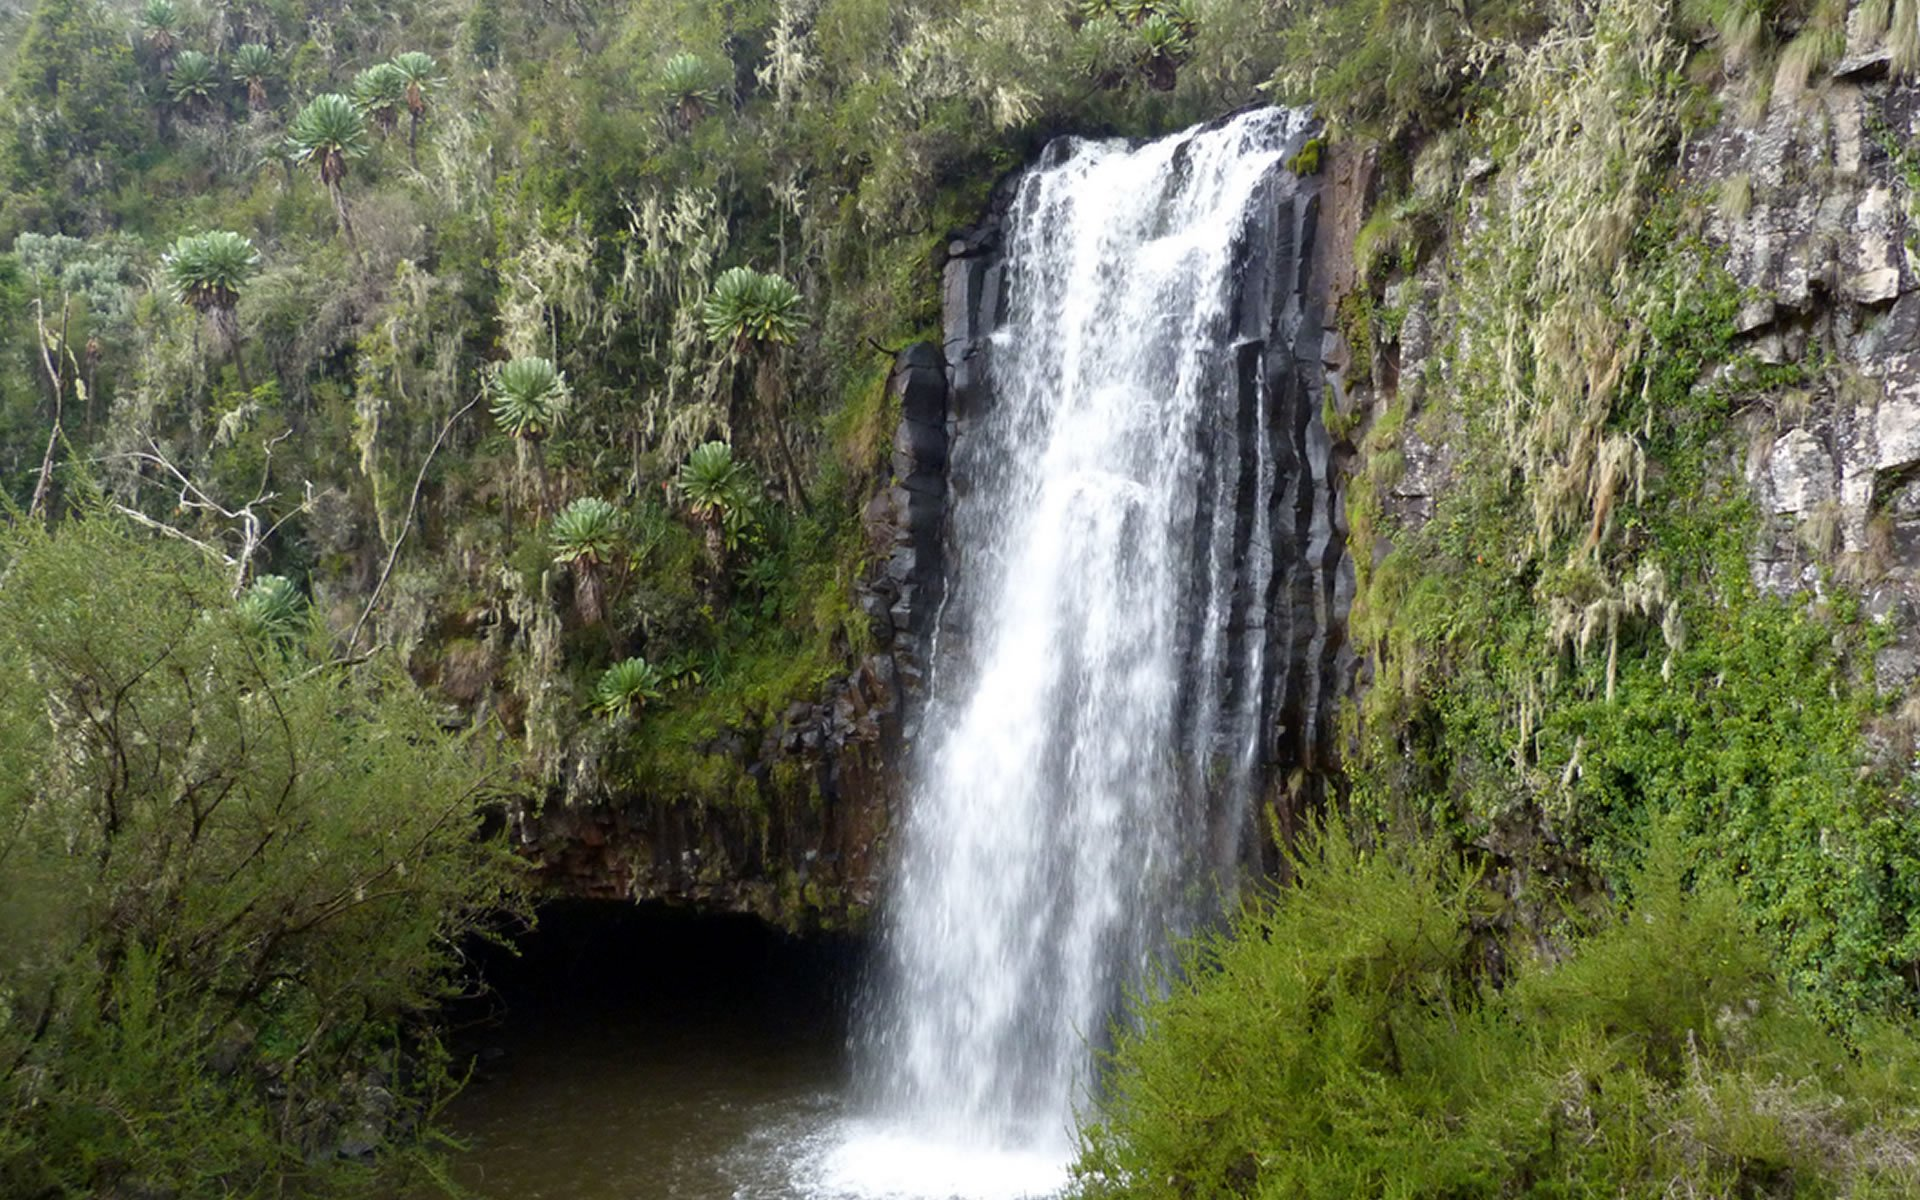 Gura Falls in the Aberdare National Park is the tallest waterfall in Kenya followed by Karuru. Fans of the film 'Out of Africa' may recognise this waterfall from the scene when Robert Redford squires Meryl Streep up in a Gypsy Moth.